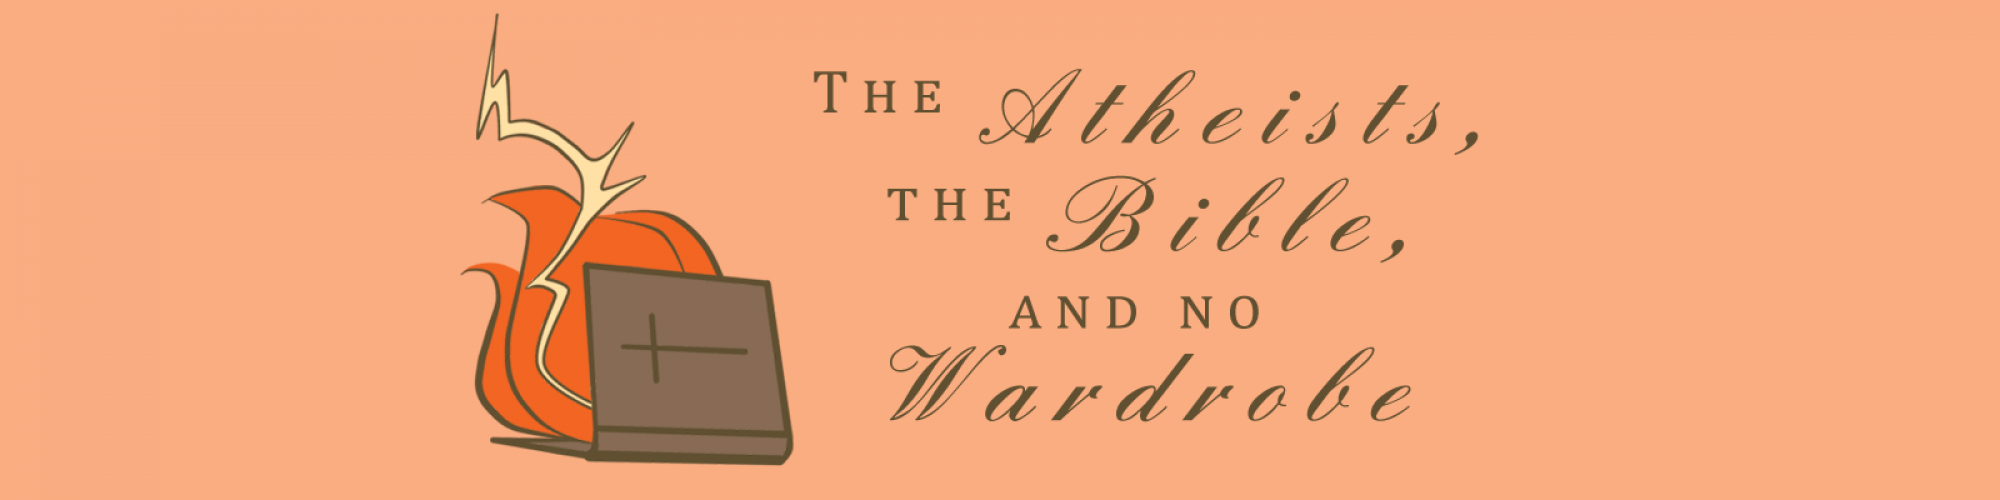 The Atheists, The Bible, and No Wardobe